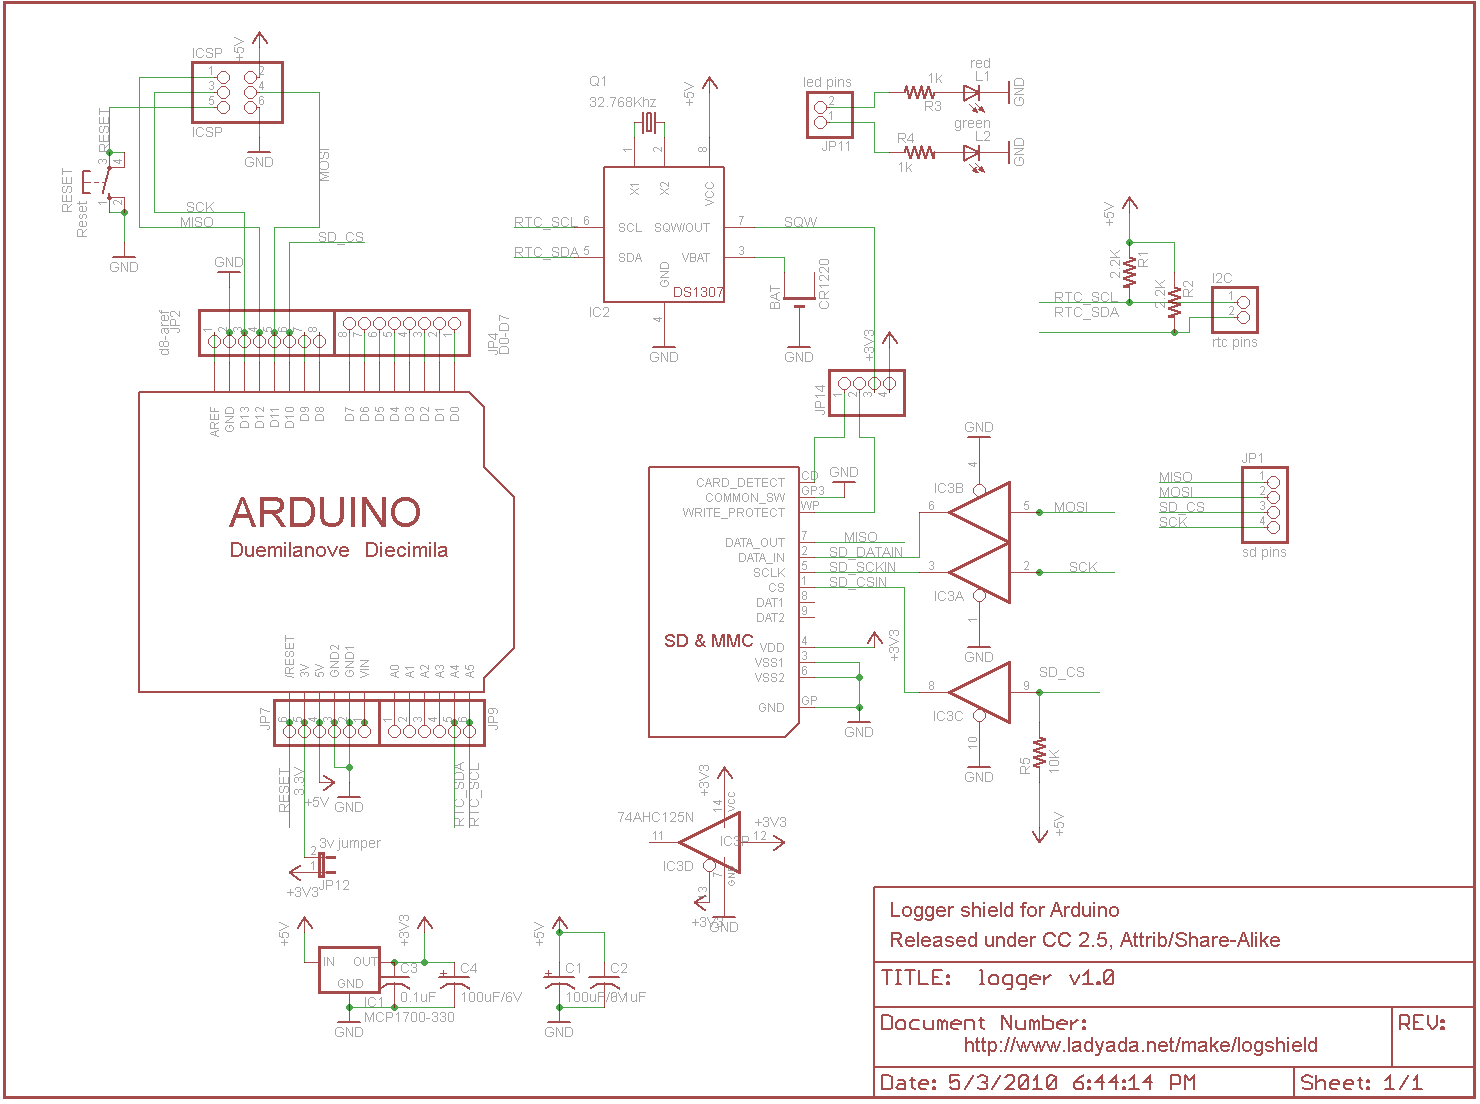 Data Module Wiring Diagram Free Download Schematic Logger Shield Datalogging For Arduino 6 Steps With Pictures An Image Of The V10